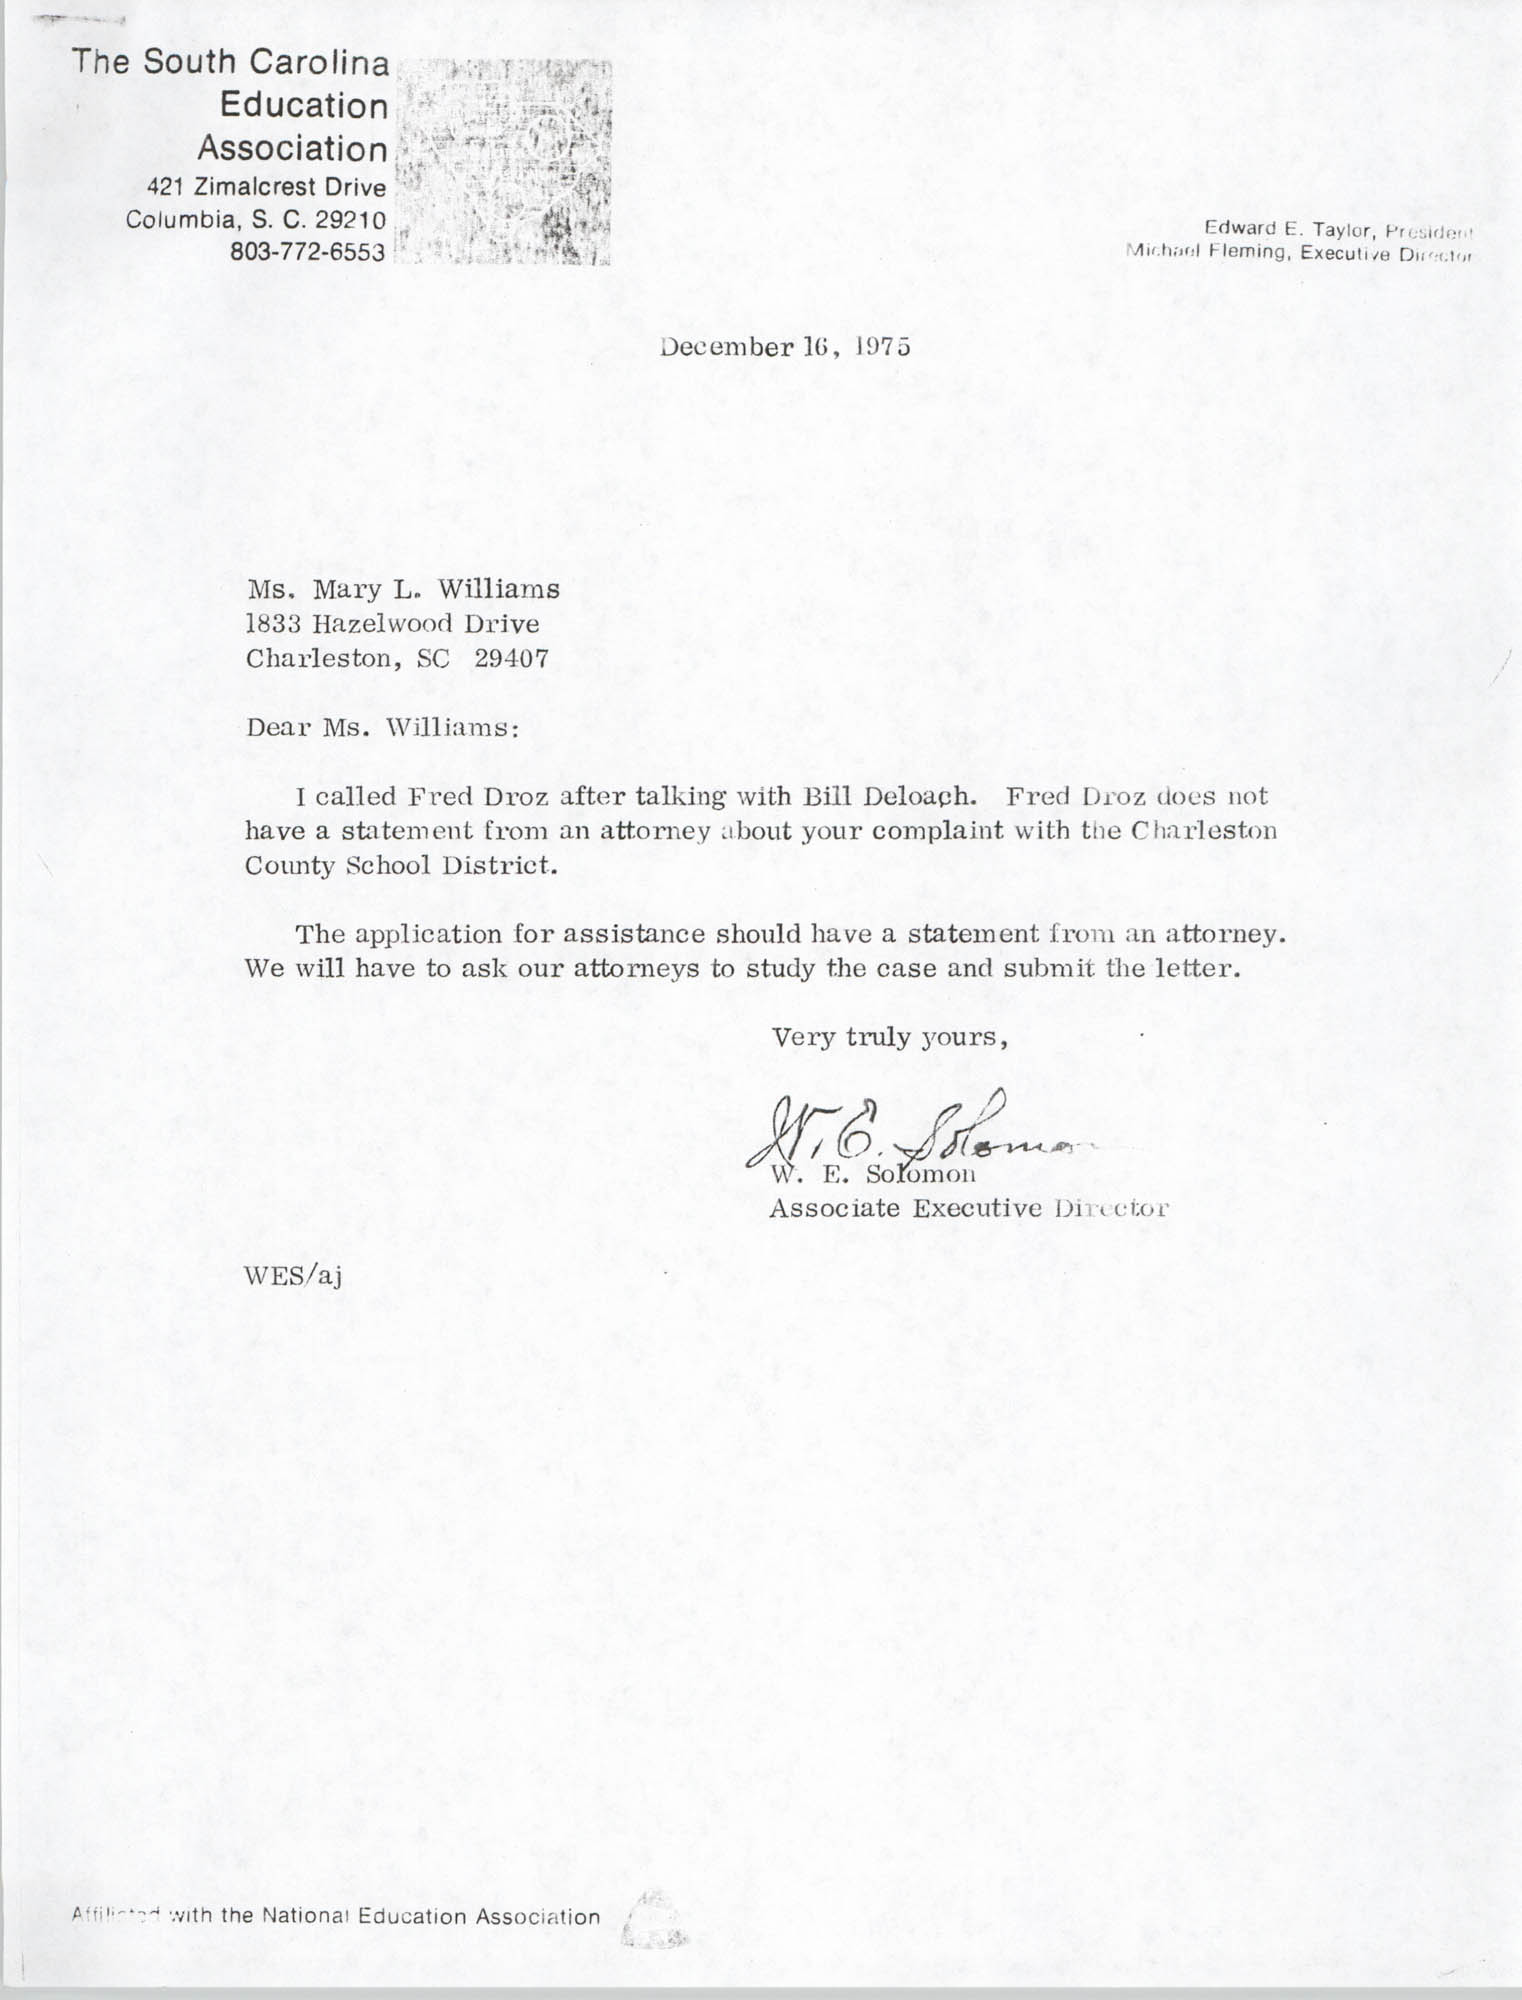 Letter from W. E. Solomon to Mary L. Williams, December 16, 1975